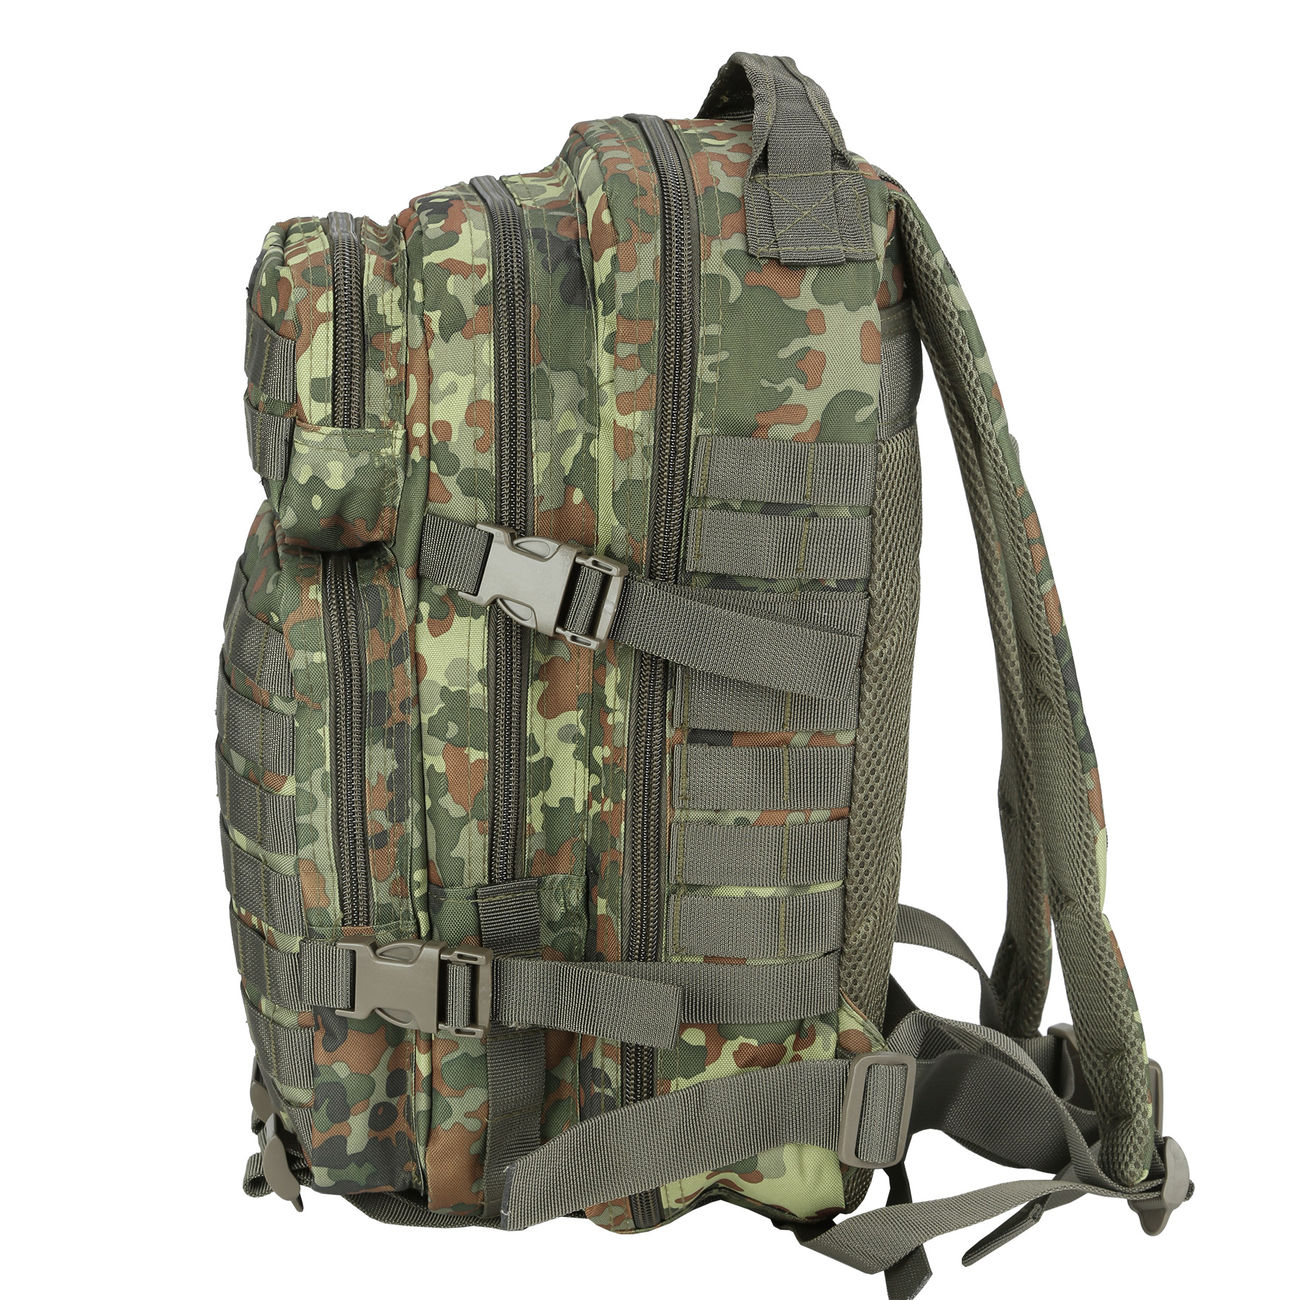 MFH Rucksack US Assault flecktarn 2